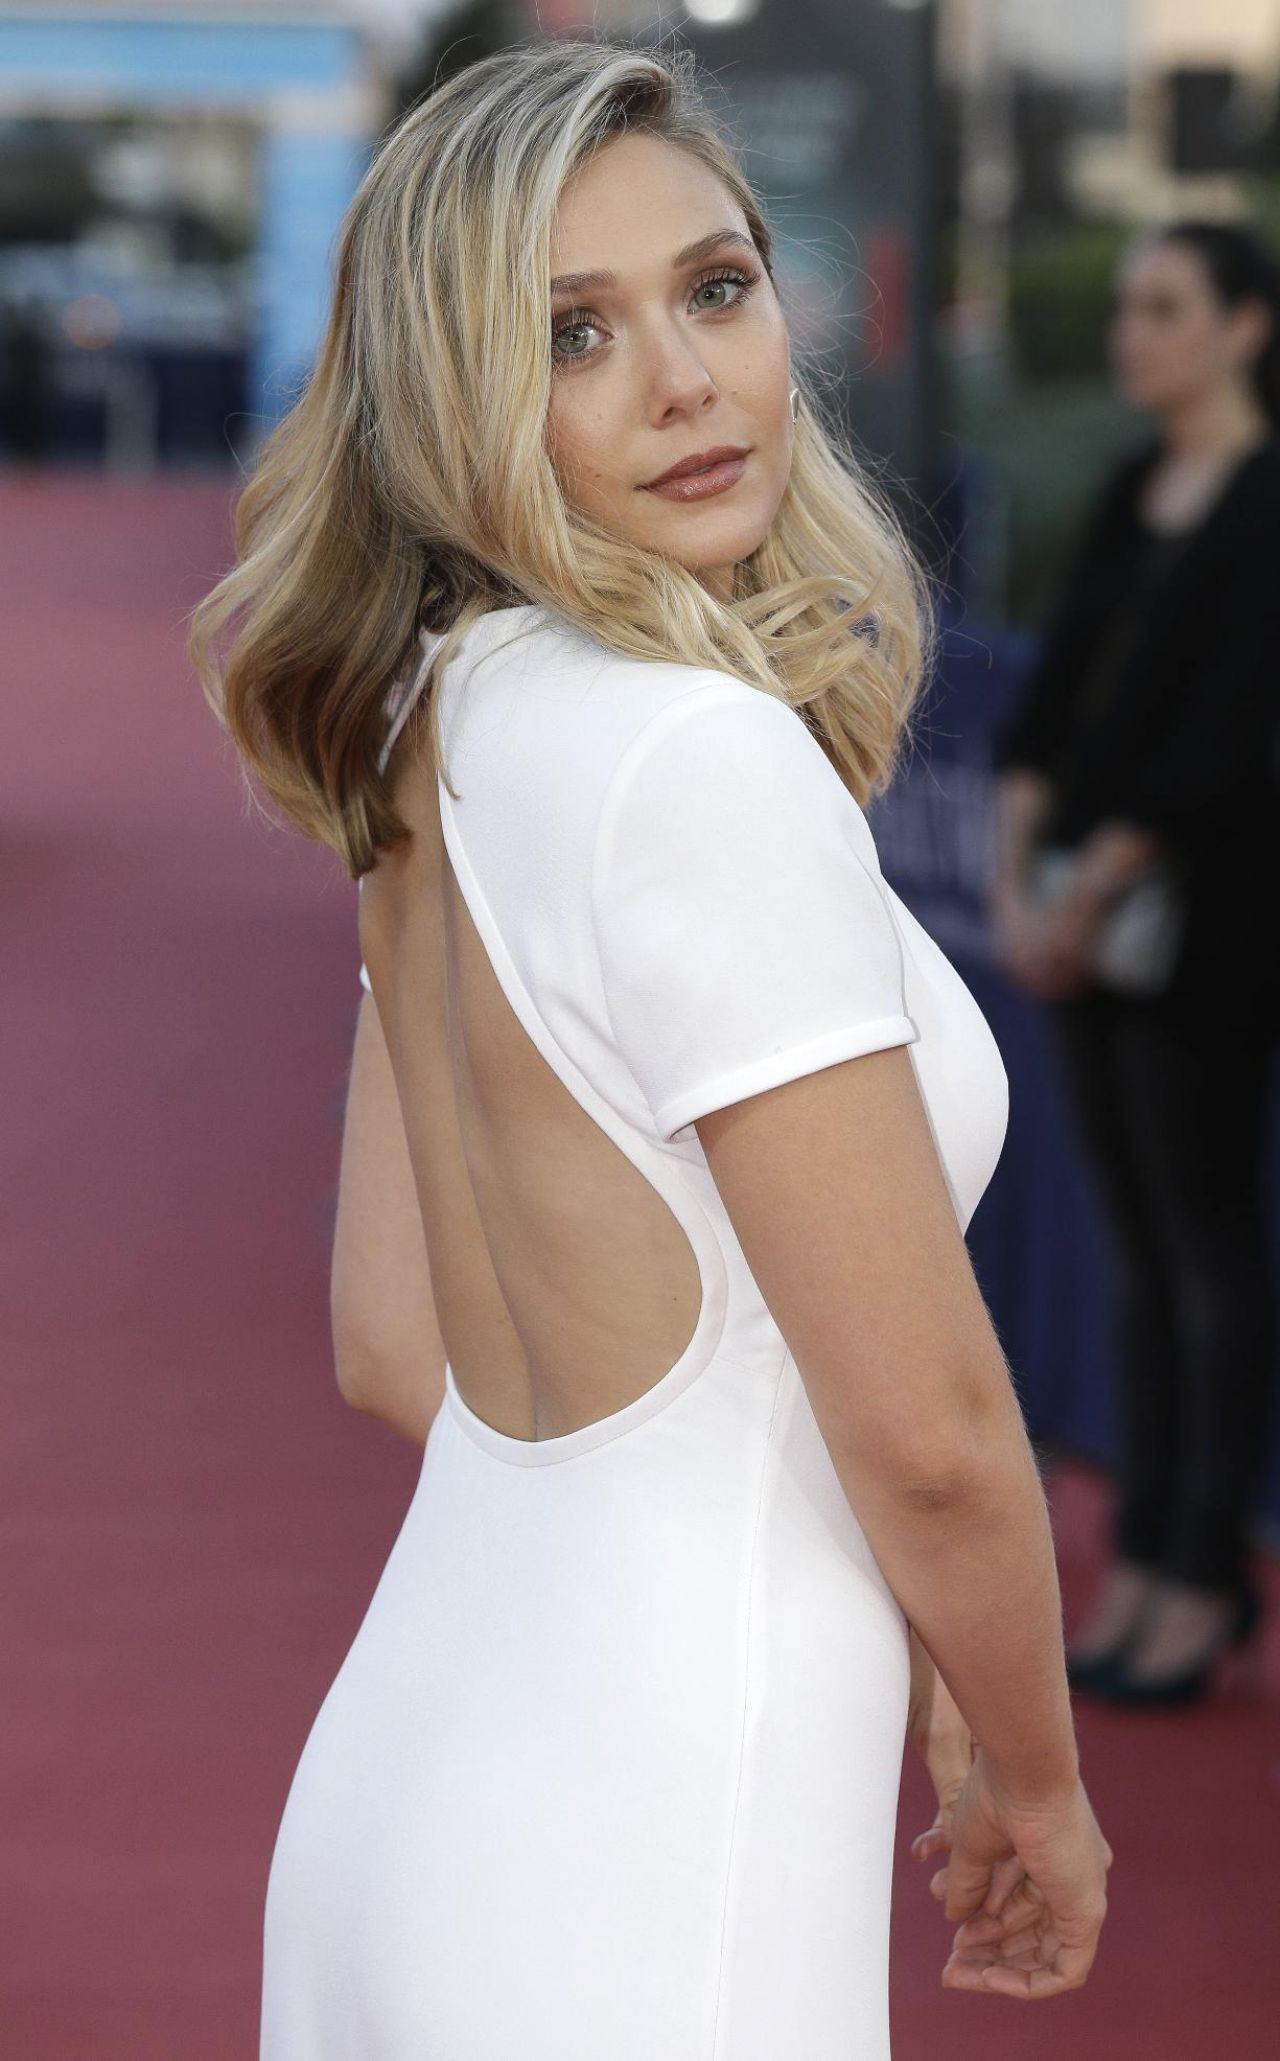 elizabeth-olsen-on-red-carpet-41st-deauville-film-festival_2